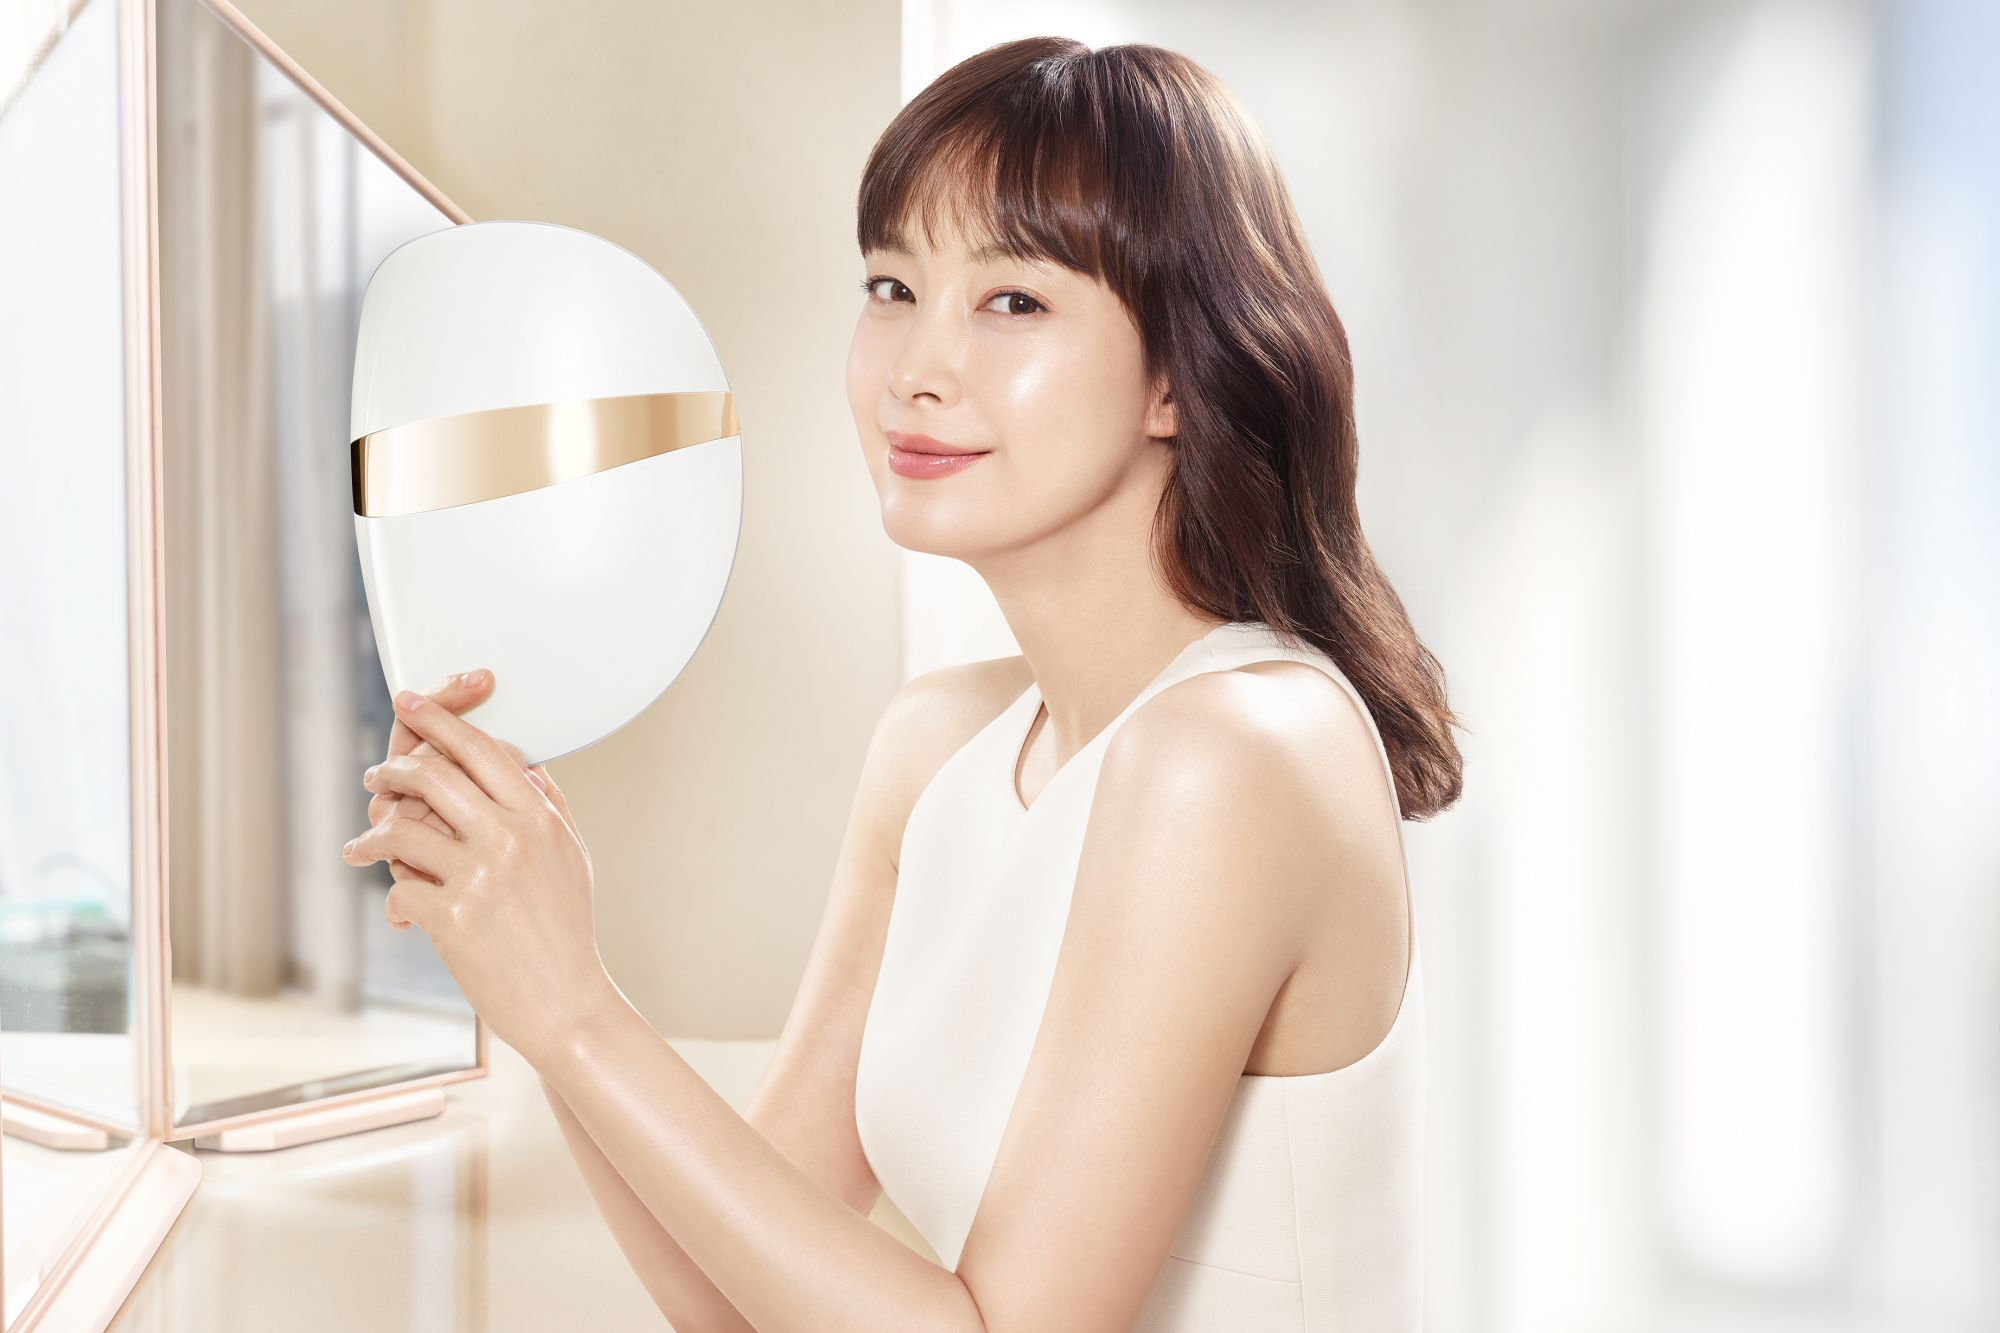 What Is Glass Skin? Here's How LG Pra.L's Derma LED Mask Can Help You Achieve It